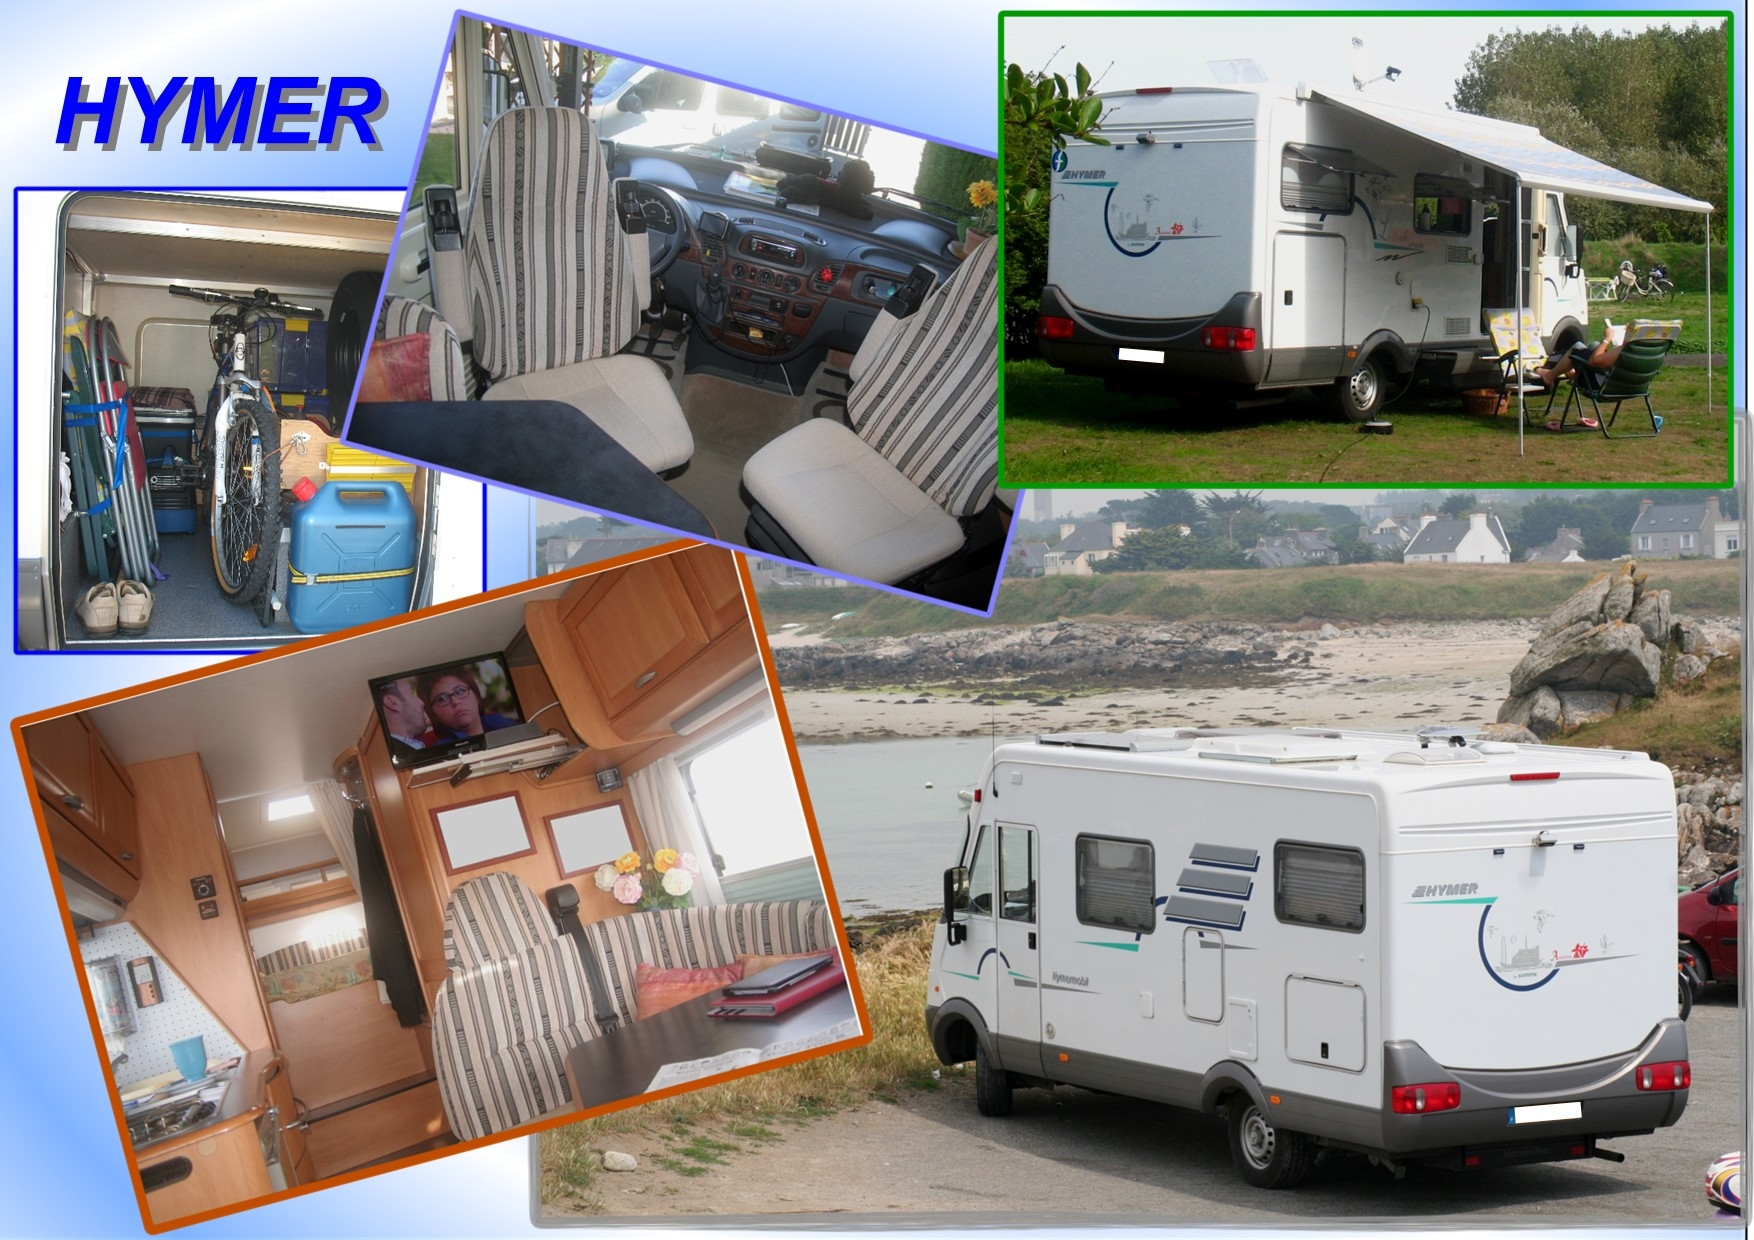 hymer bm 630 occasion de 2002 mercedes camping car en vente longueau somme 80. Black Bedroom Furniture Sets. Home Design Ideas